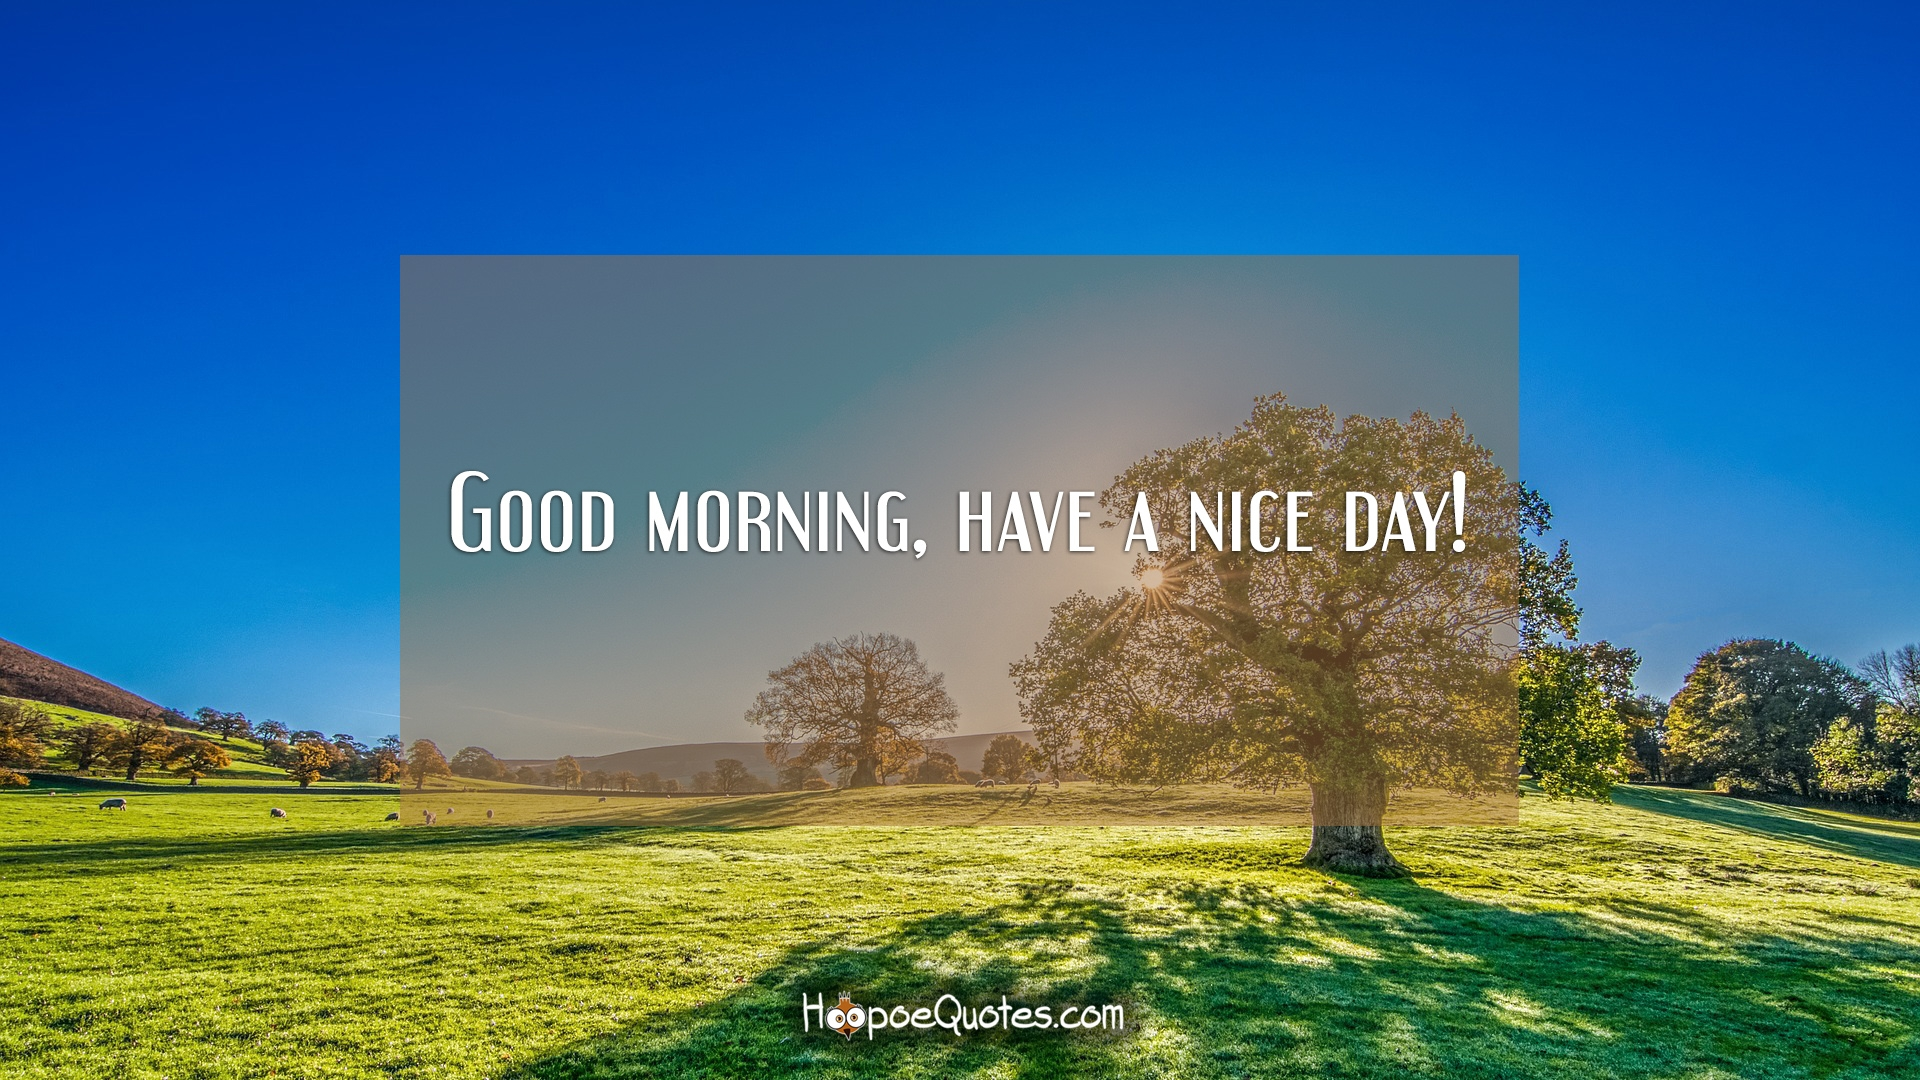 Good Morning Have A Nice Day Hoopoequotes